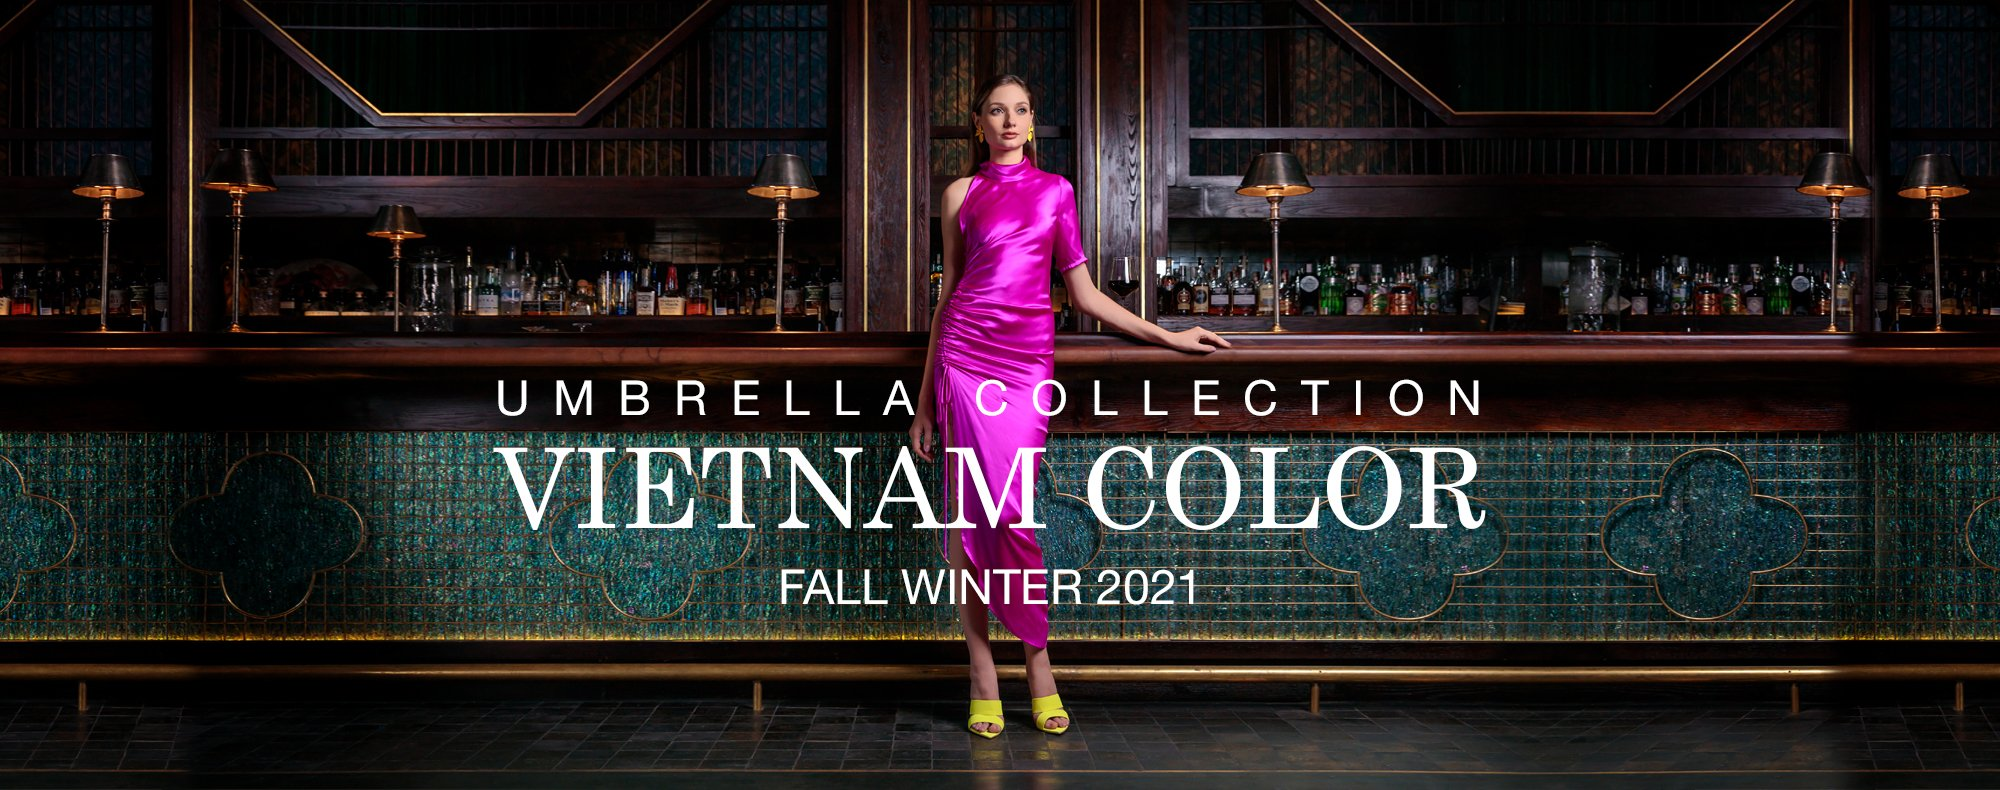 Vietnam Color Fall Winter 2021